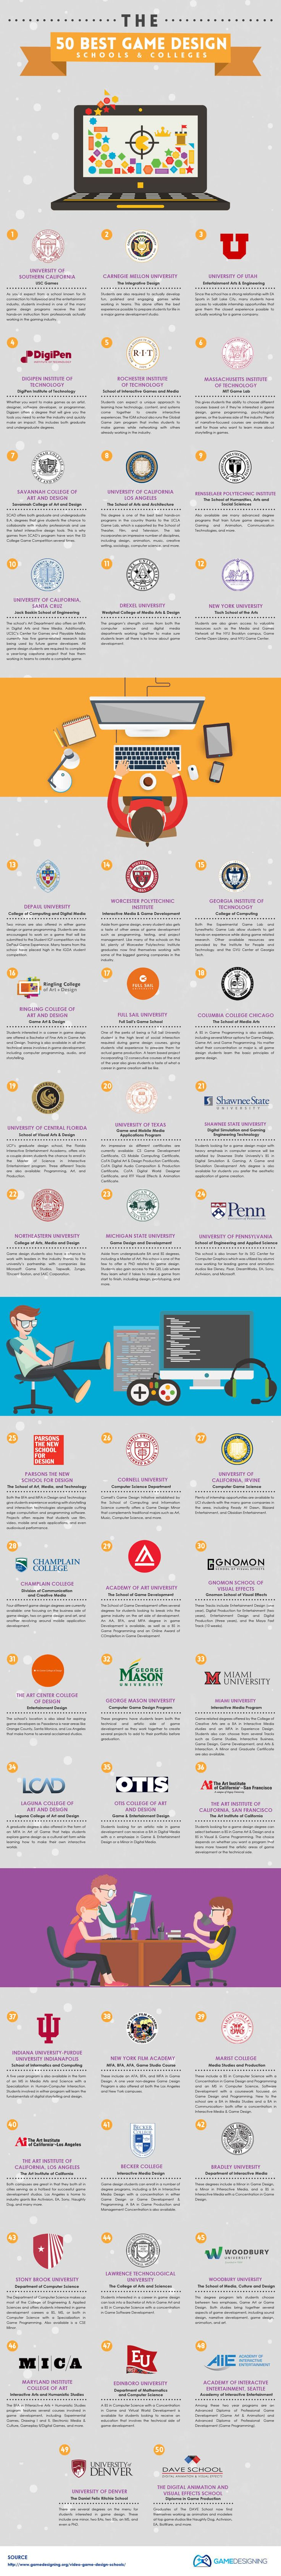 The team at gamedesigning.org has reviewed and ranked the very best college programs for those hoping to become a video game designer. Using criteria like graduation and employment rates, professor scores, average starting salary, and tuition costs, they were able to select the top schools worth enrolling in. Getting into one of these schools doesn't guarantee you'll become a successful designer, but will definitely help.